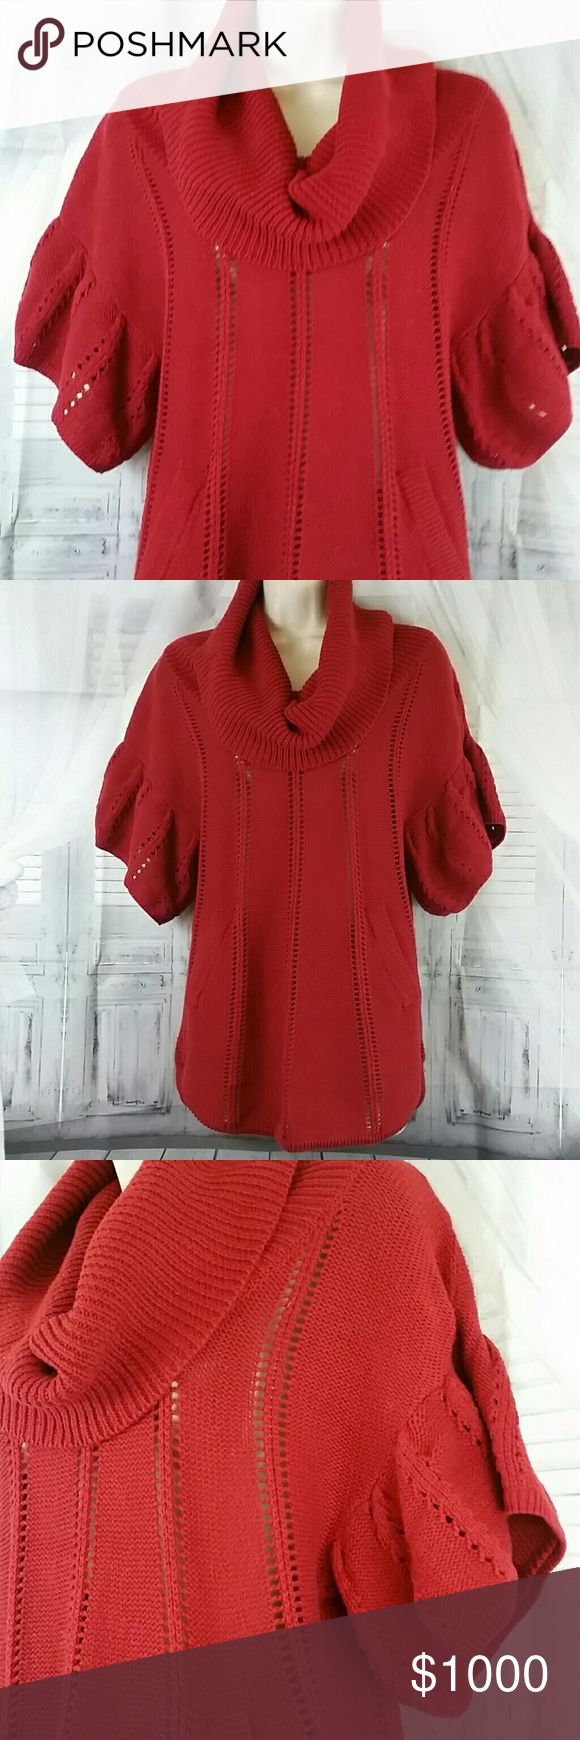 BCBG Ruffled Sweater BCBG Red Ruffled Sweater in EUC, Sweater has short sleeves, Cowl neck, and 2 side pockets. Size Small Women's could possibly fit a medium sized woman as well, but is marked a size small BCBGMaxAzria Sweaters Cowl & Turtlenecks